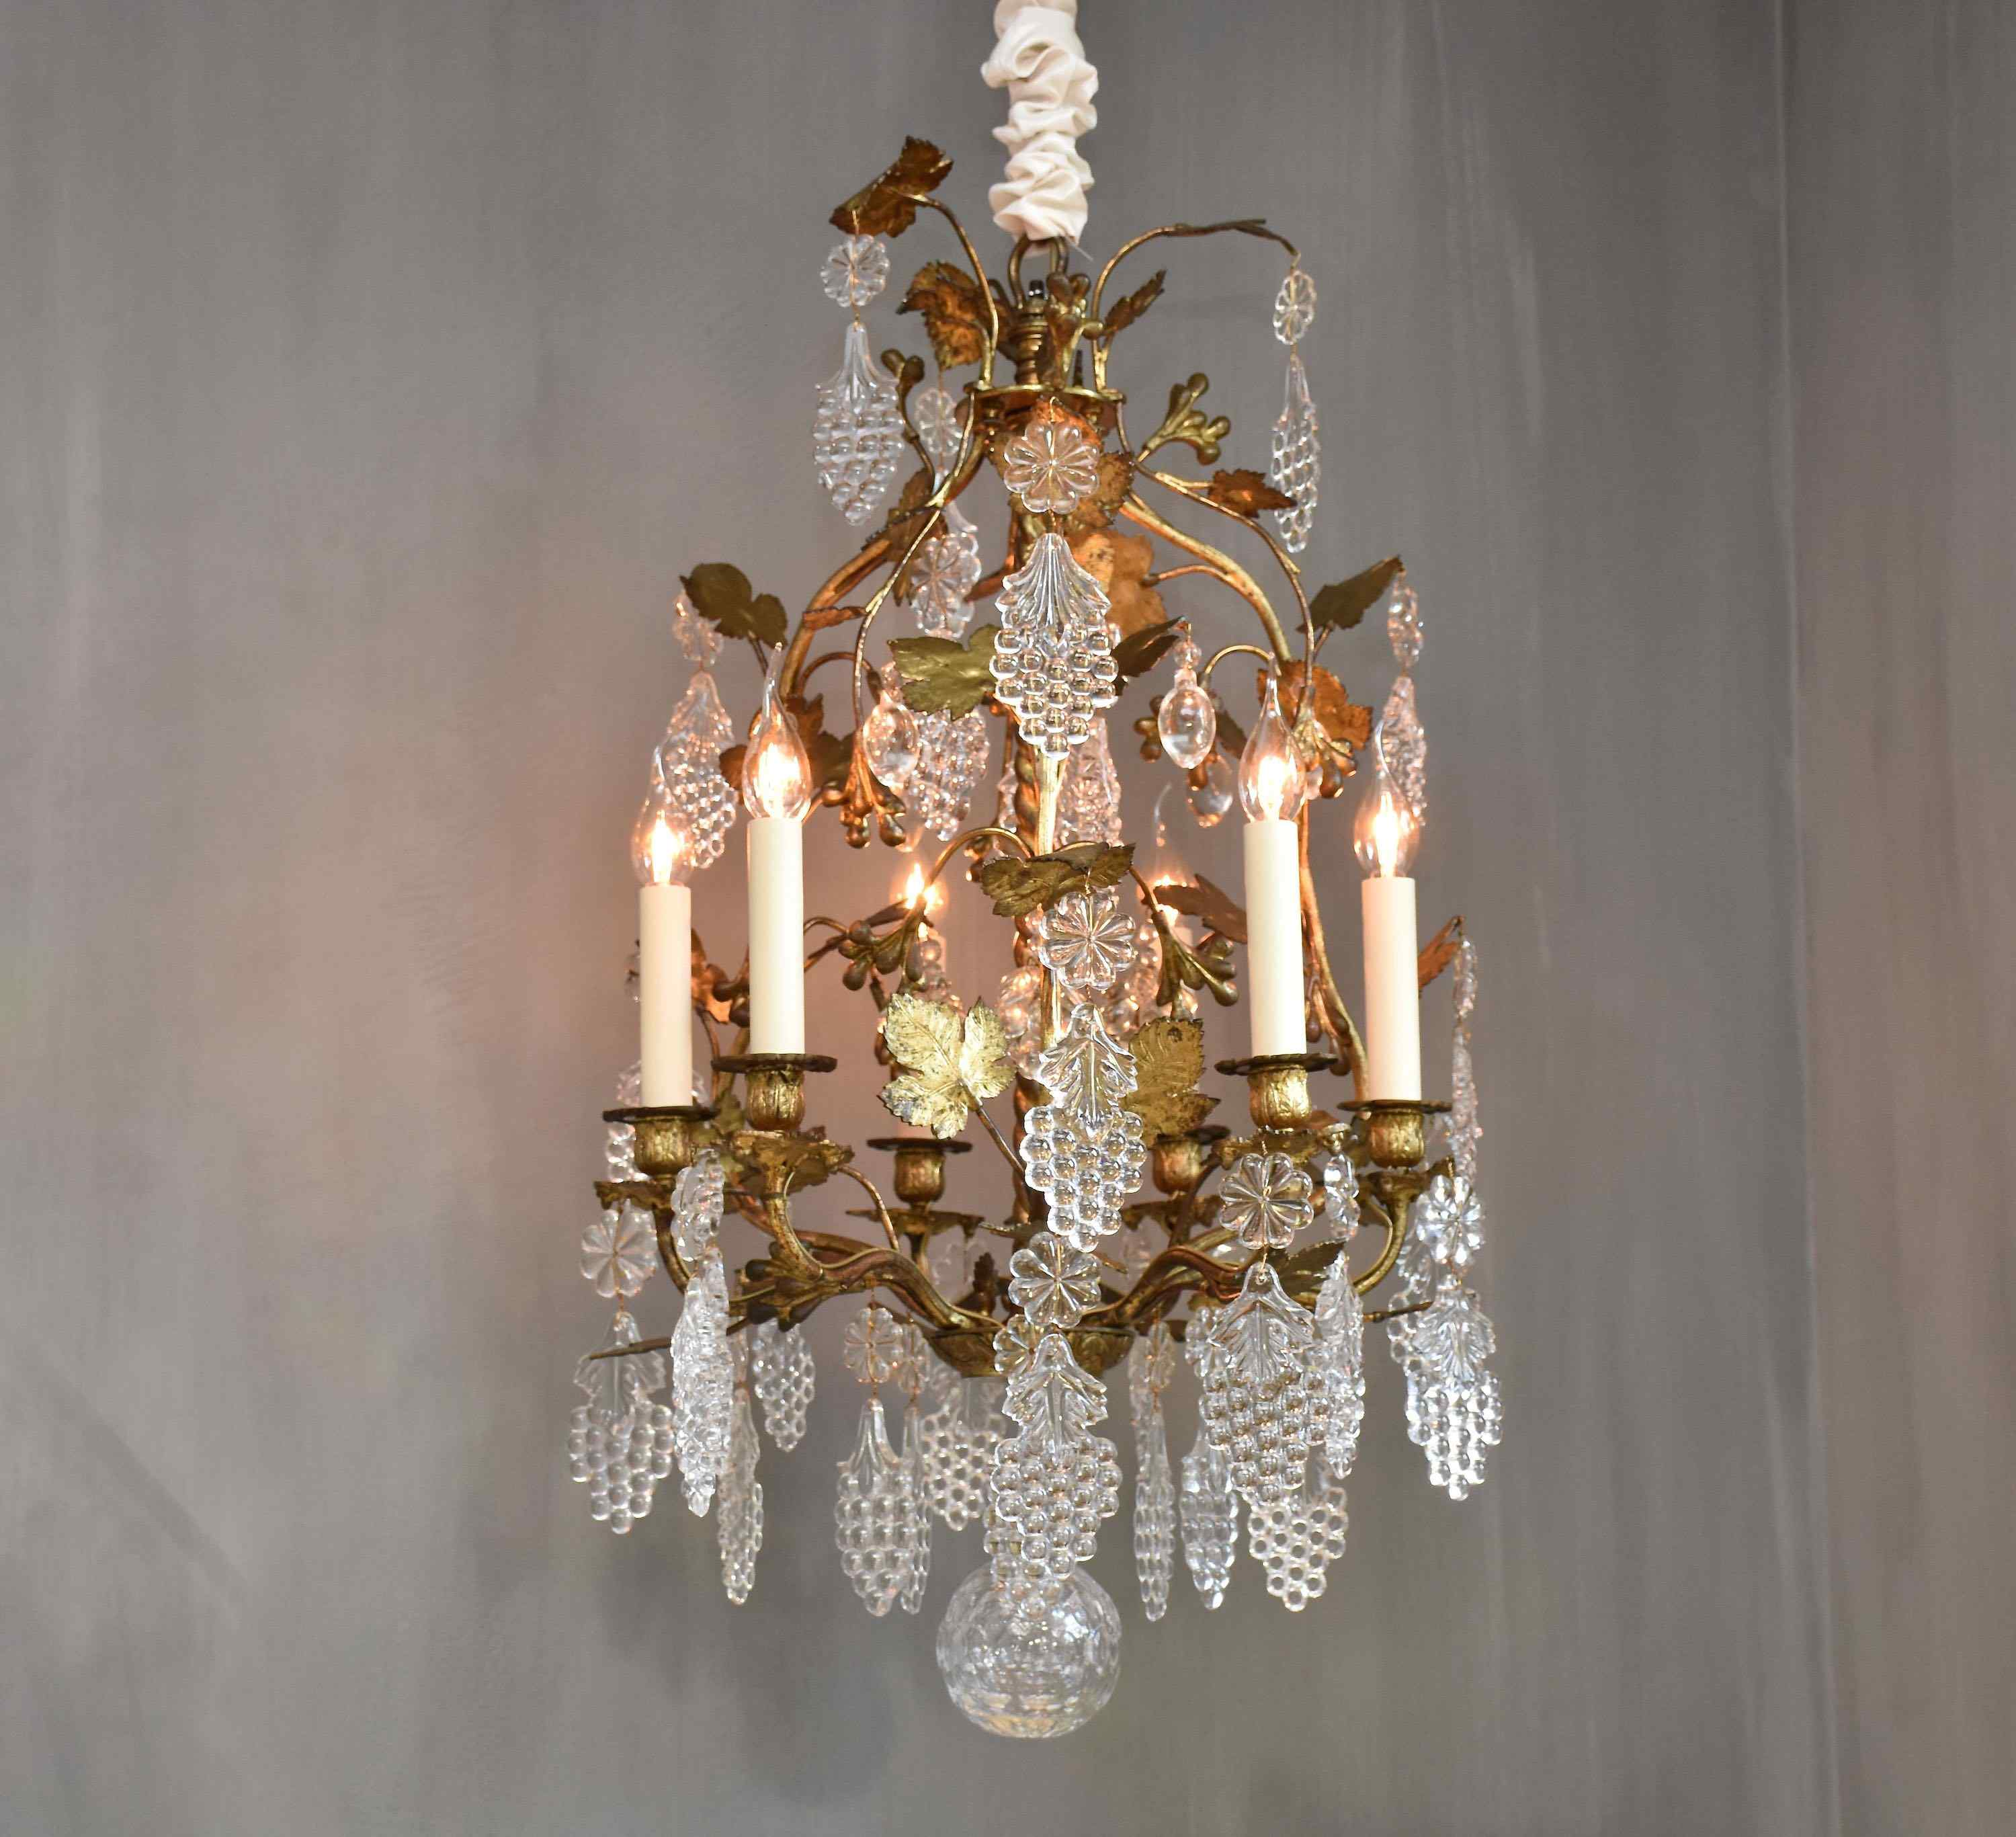 19th c. French bronze chandelier with Baccarat crystals